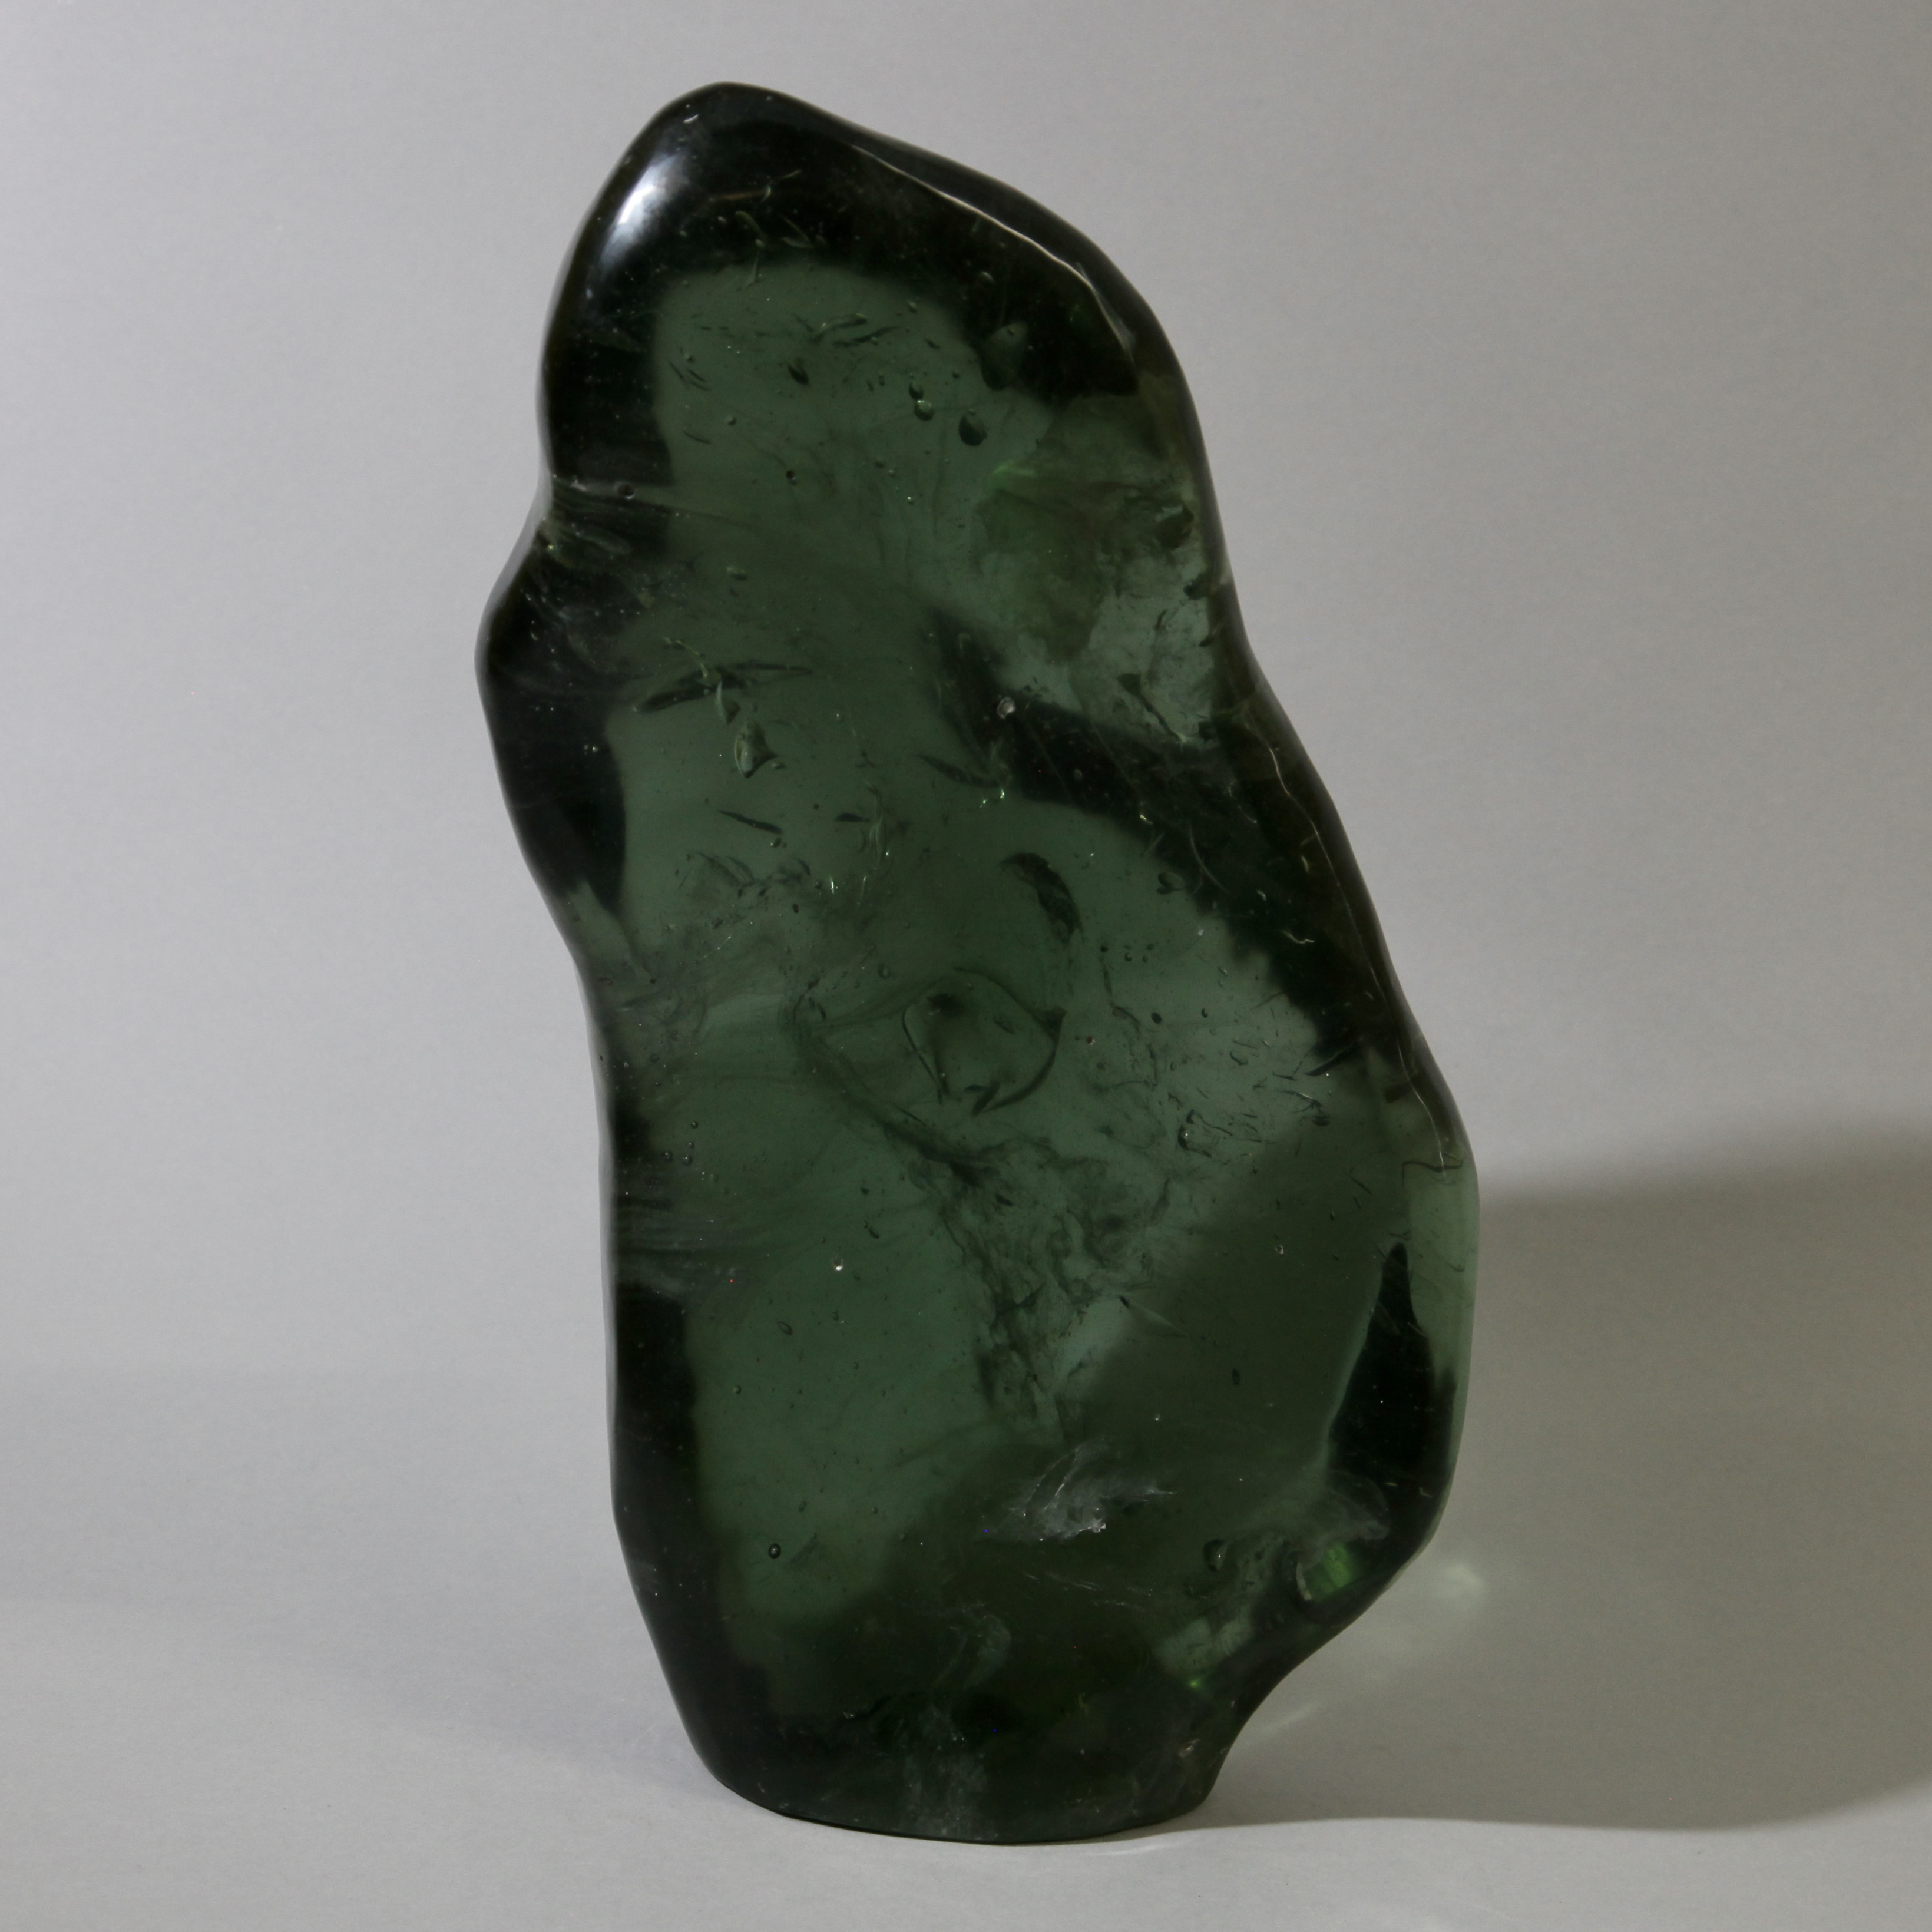 AN ORGANICALLY SHAPED NATURAL GLASS FROM MADAGASCAR ( No 1386 )